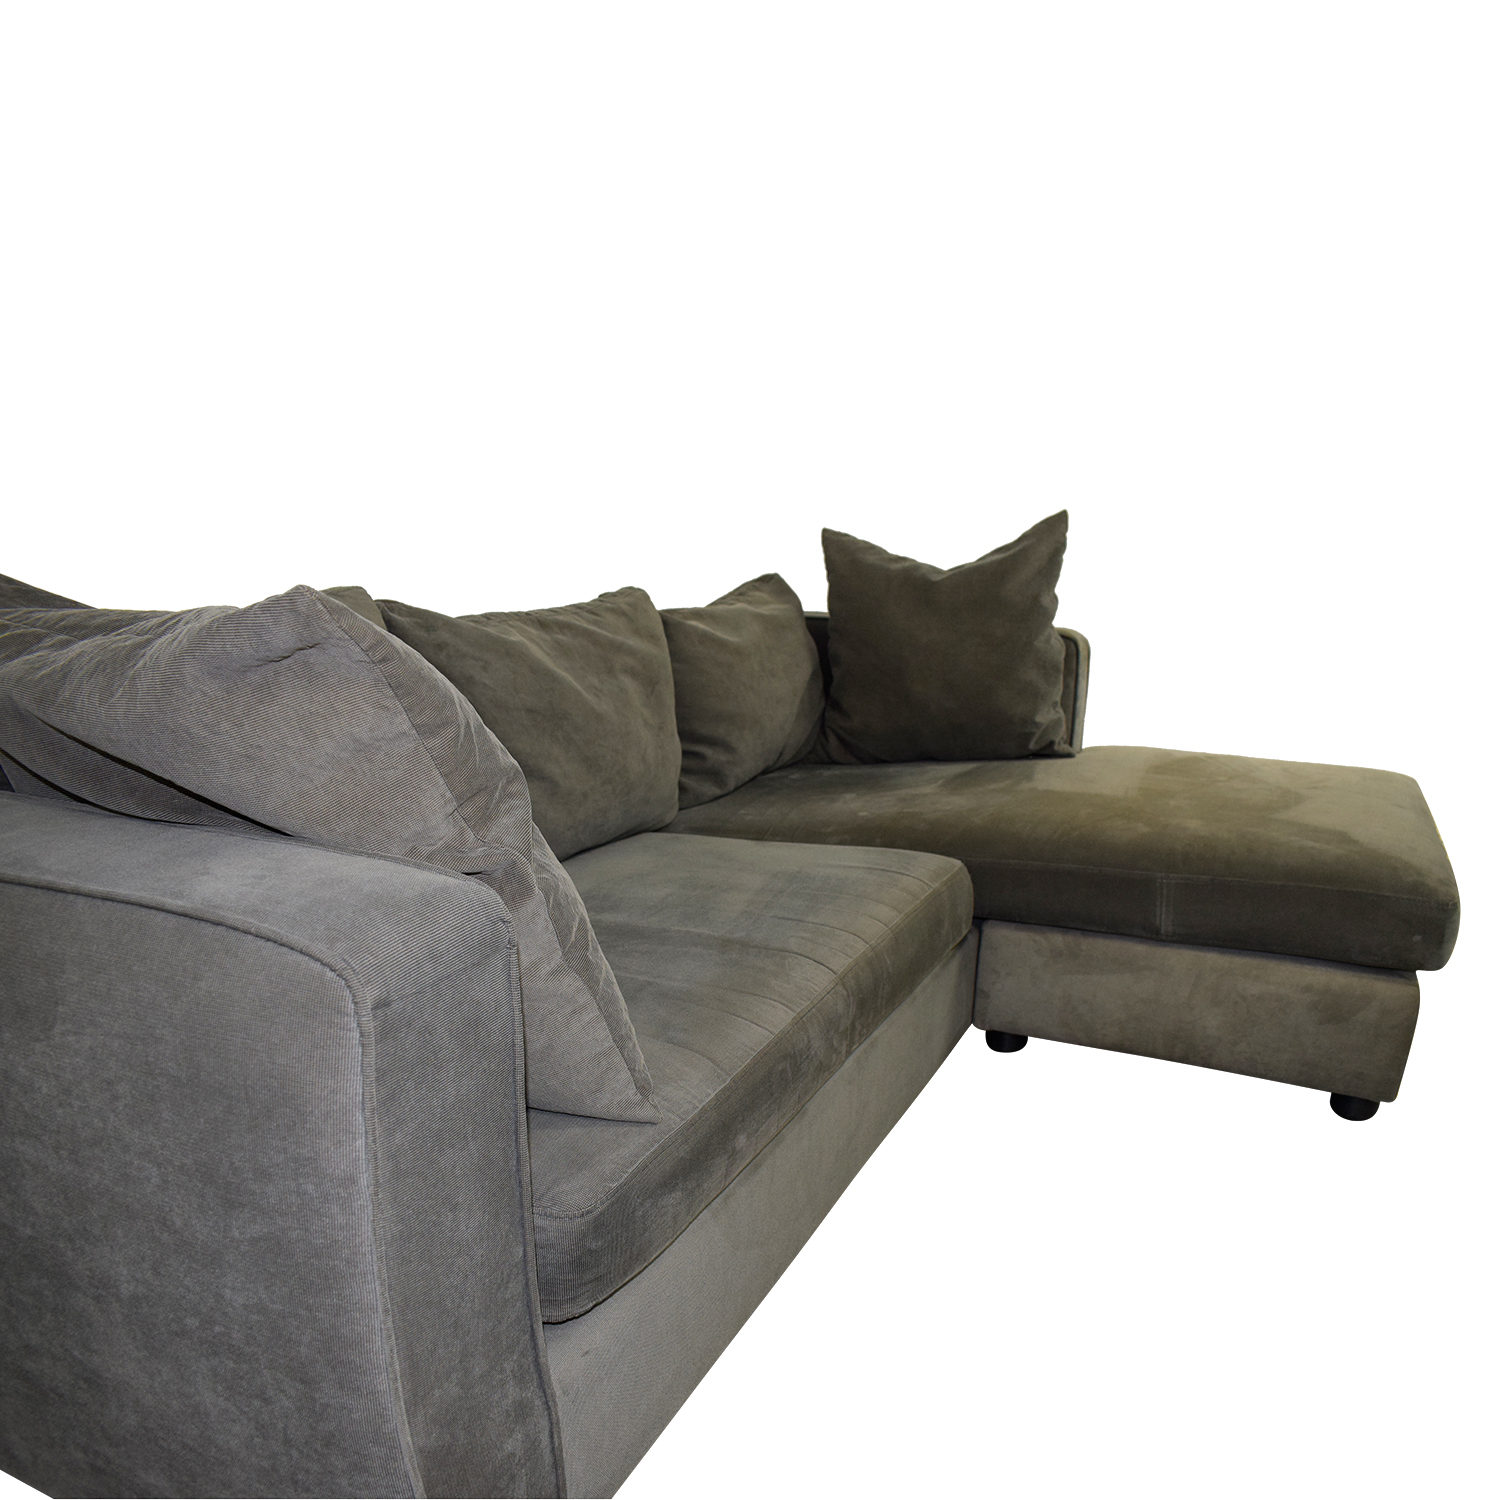 ABC Carpet & Home Grey L- Shaped Couch ABC Carpet & Home